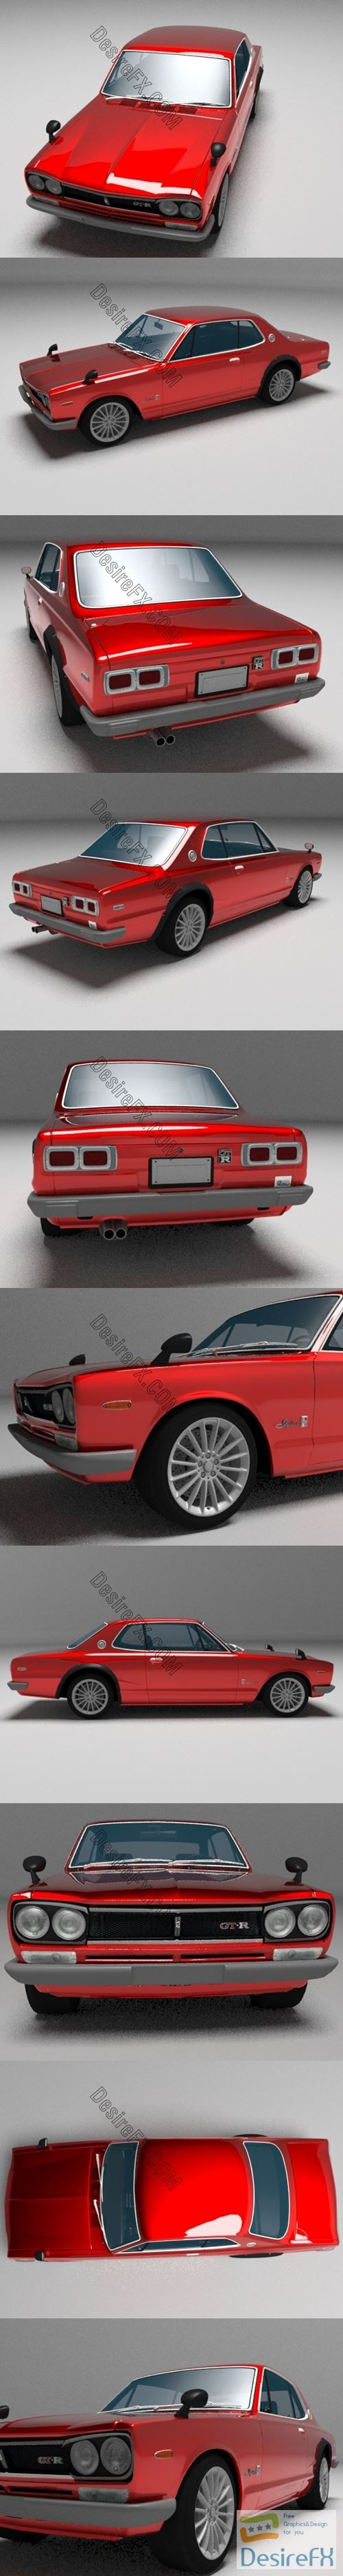 3d-models - Nissan Skyline 2000 GT-R 3D Model